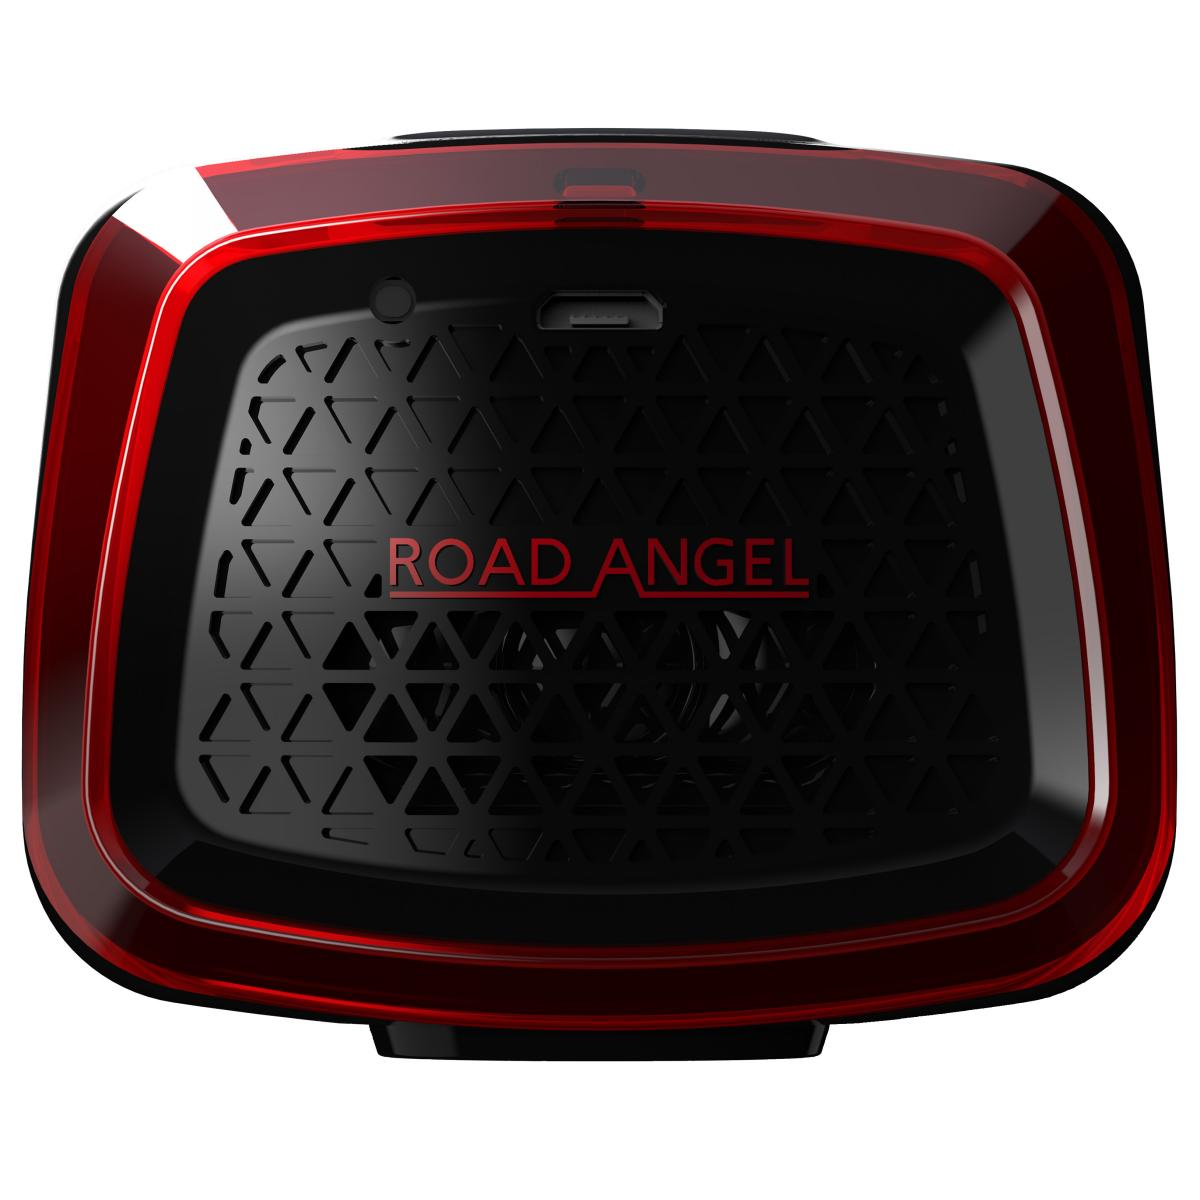 Road Angel Dash Cams and Speed Camera Detectors Pure1 2